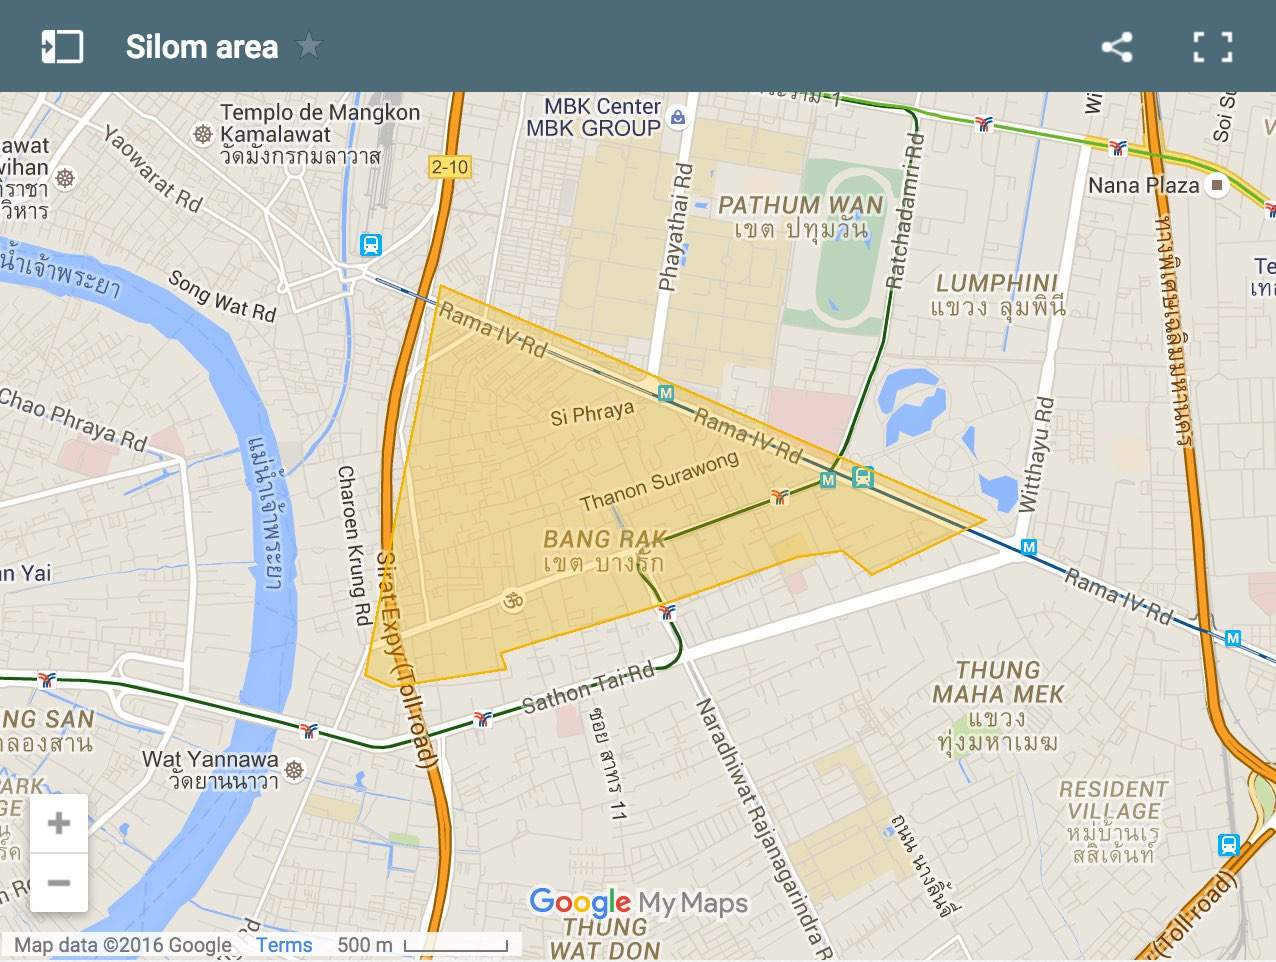 Map showing where to stay in Silom